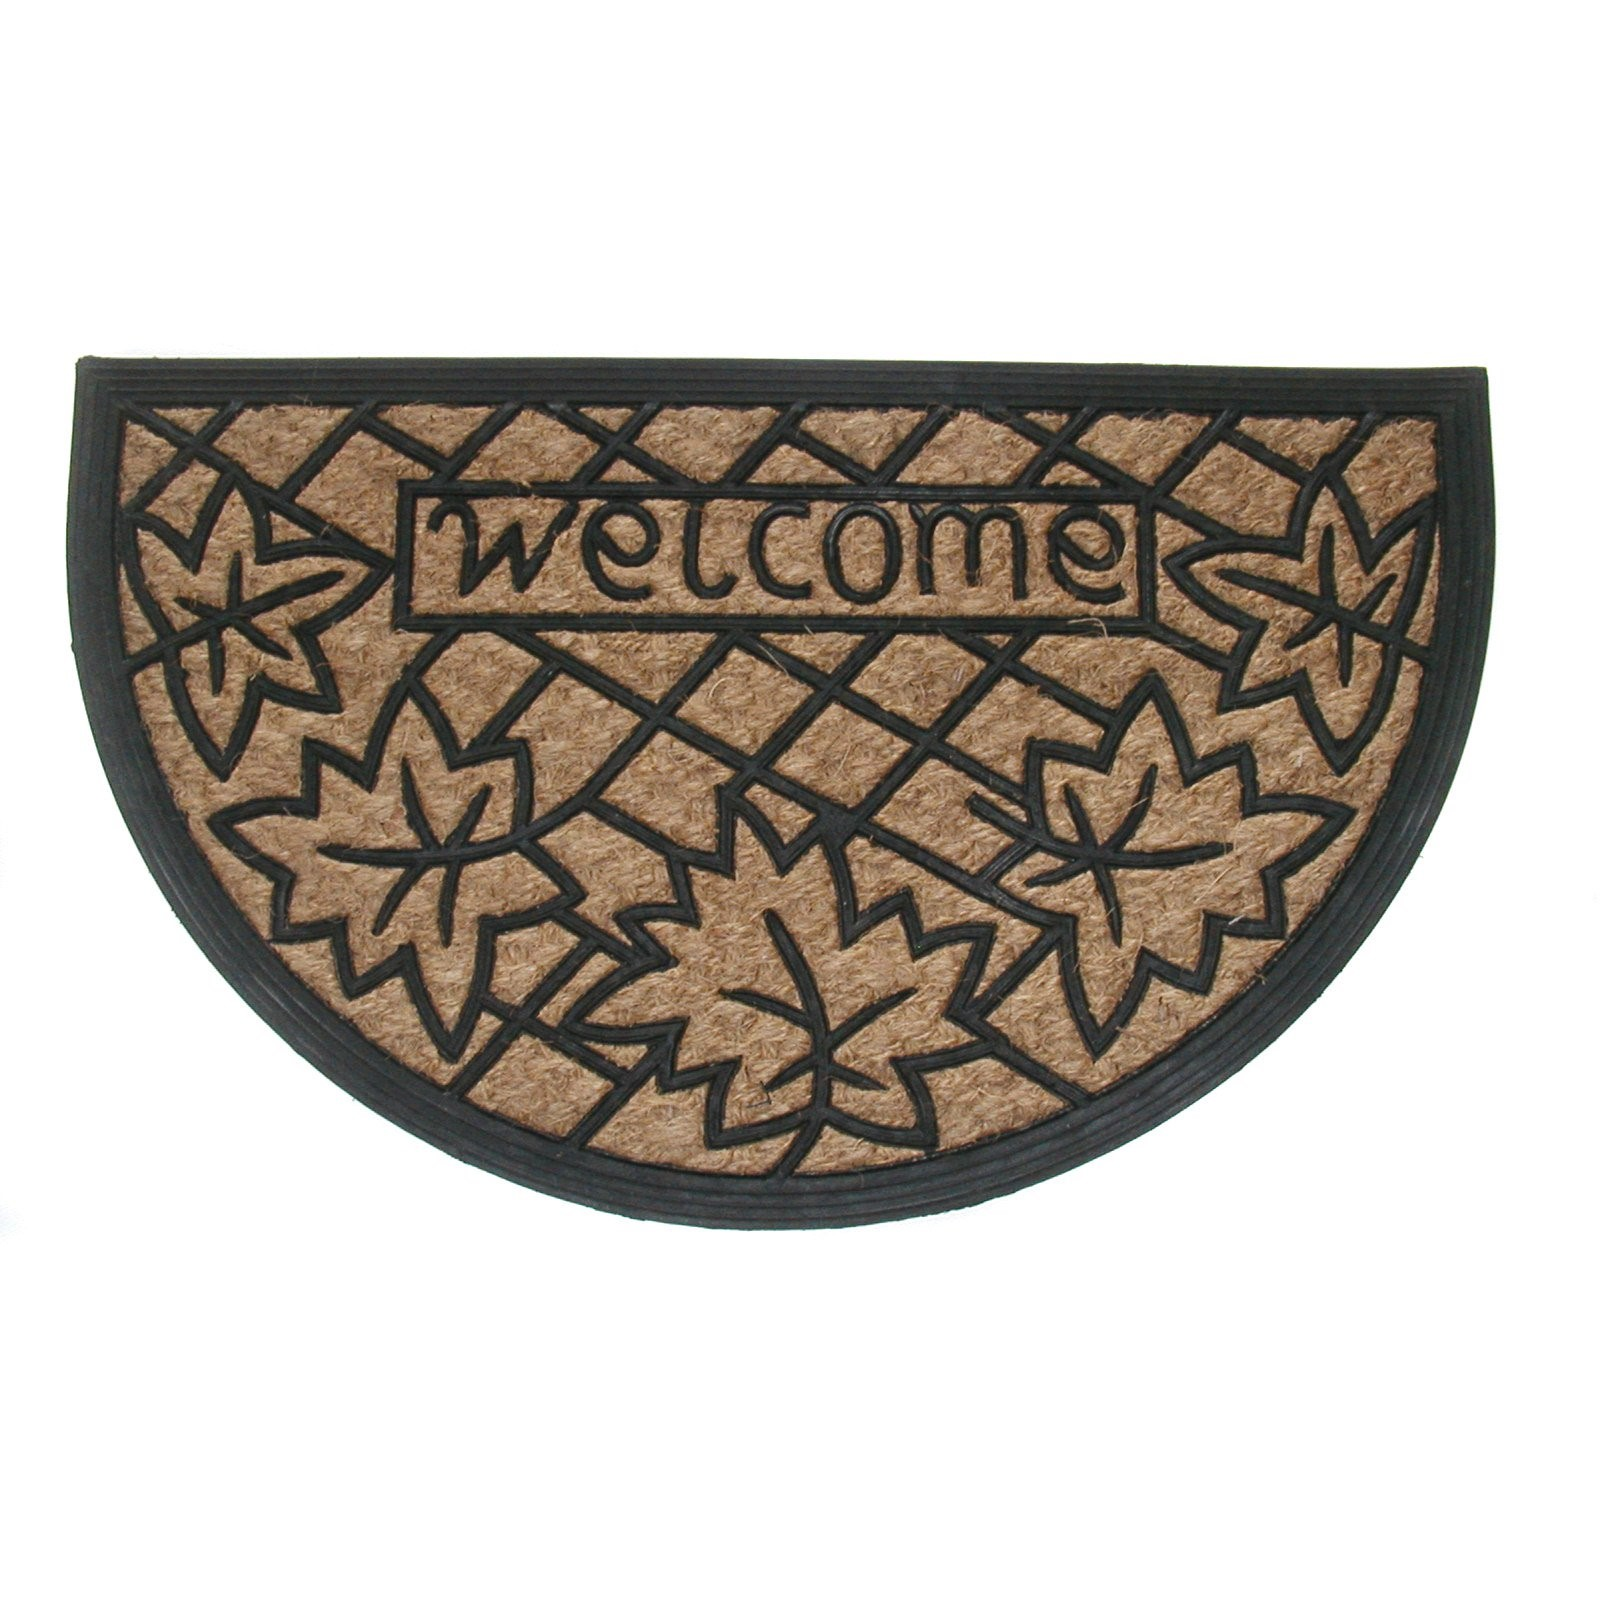 Tuffcor Panama Welcome Leaves Mat, 18 x 30